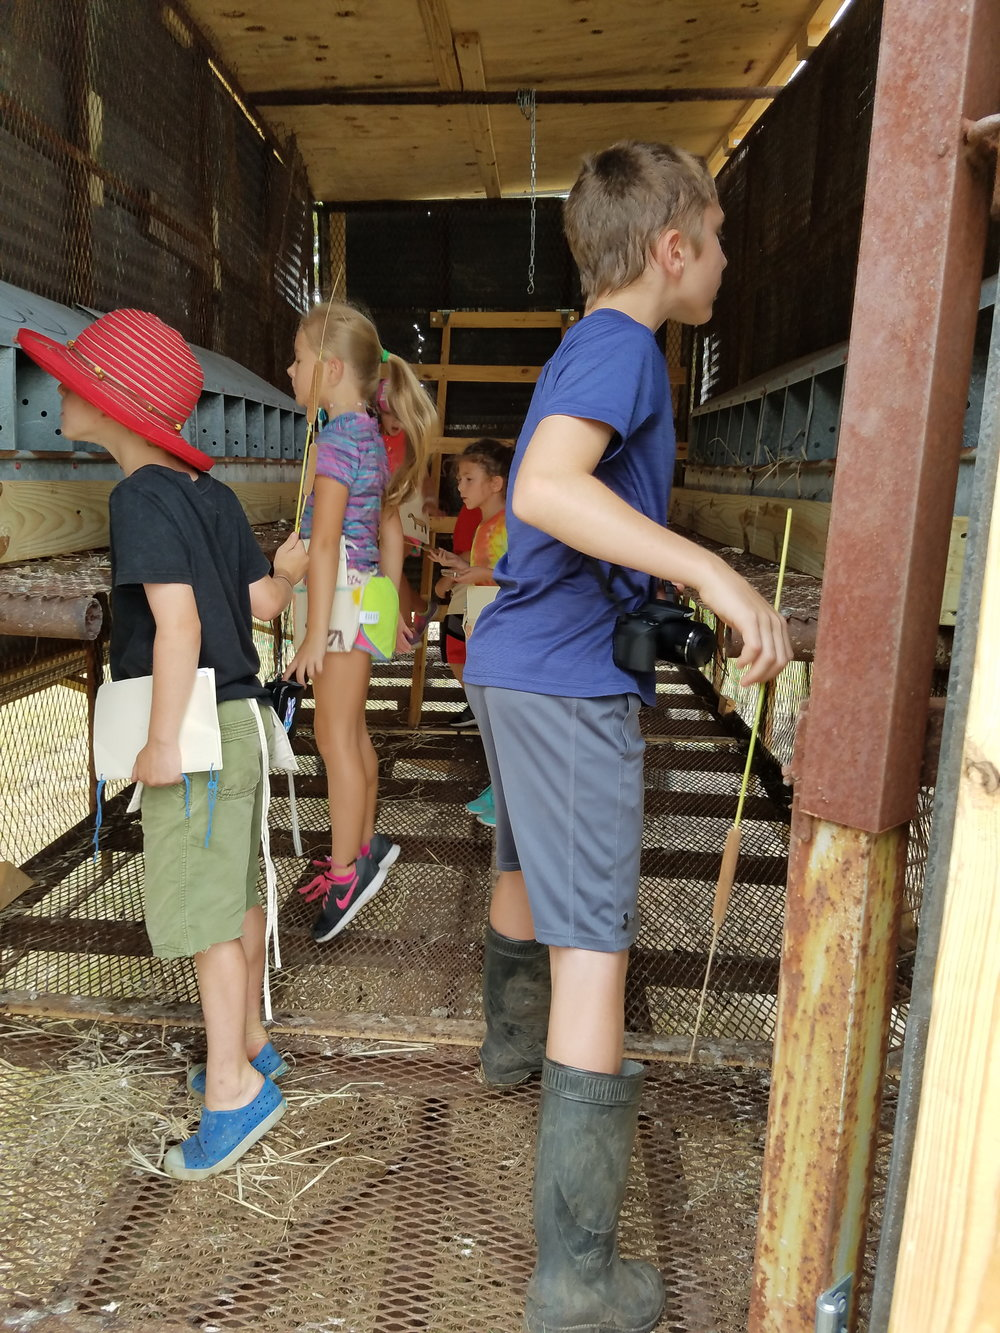 We are on egg watch as we wait for the pullets to lay eggs any day now in the mobile chicken coop.